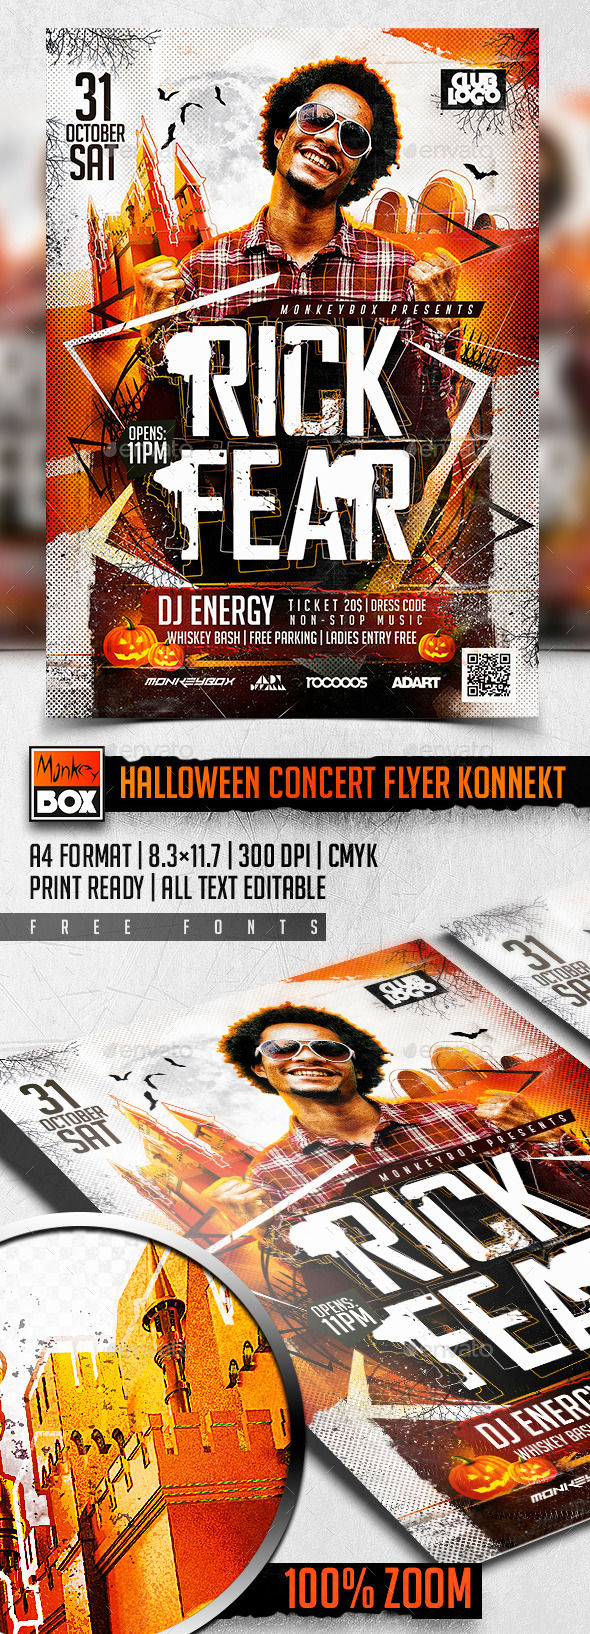 Halloween Concert Flyer Konnekt by MonkeyBOX (Halloween party flyer)